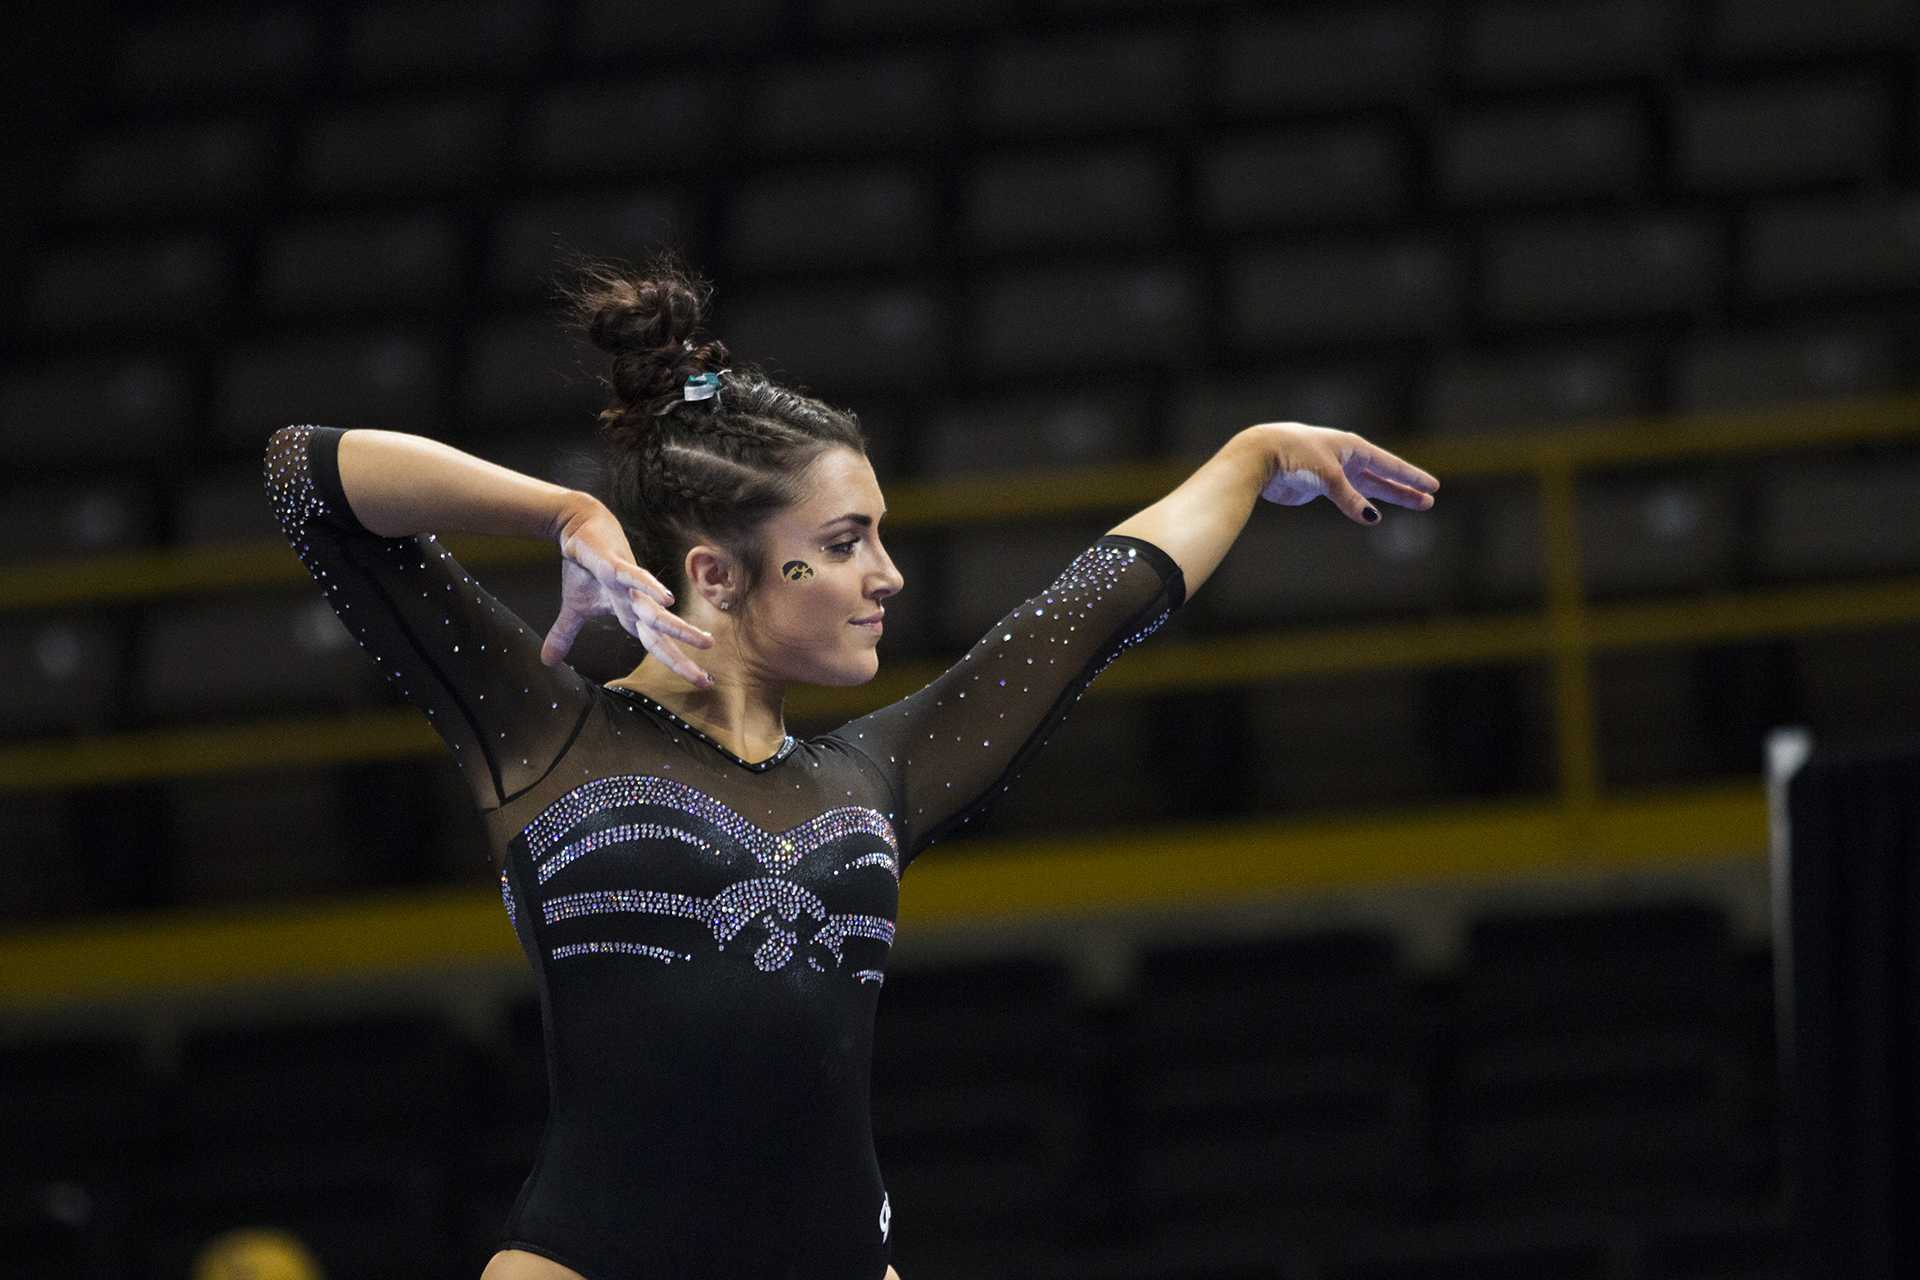 Postseason competition ramps up for Iowa gymnastics